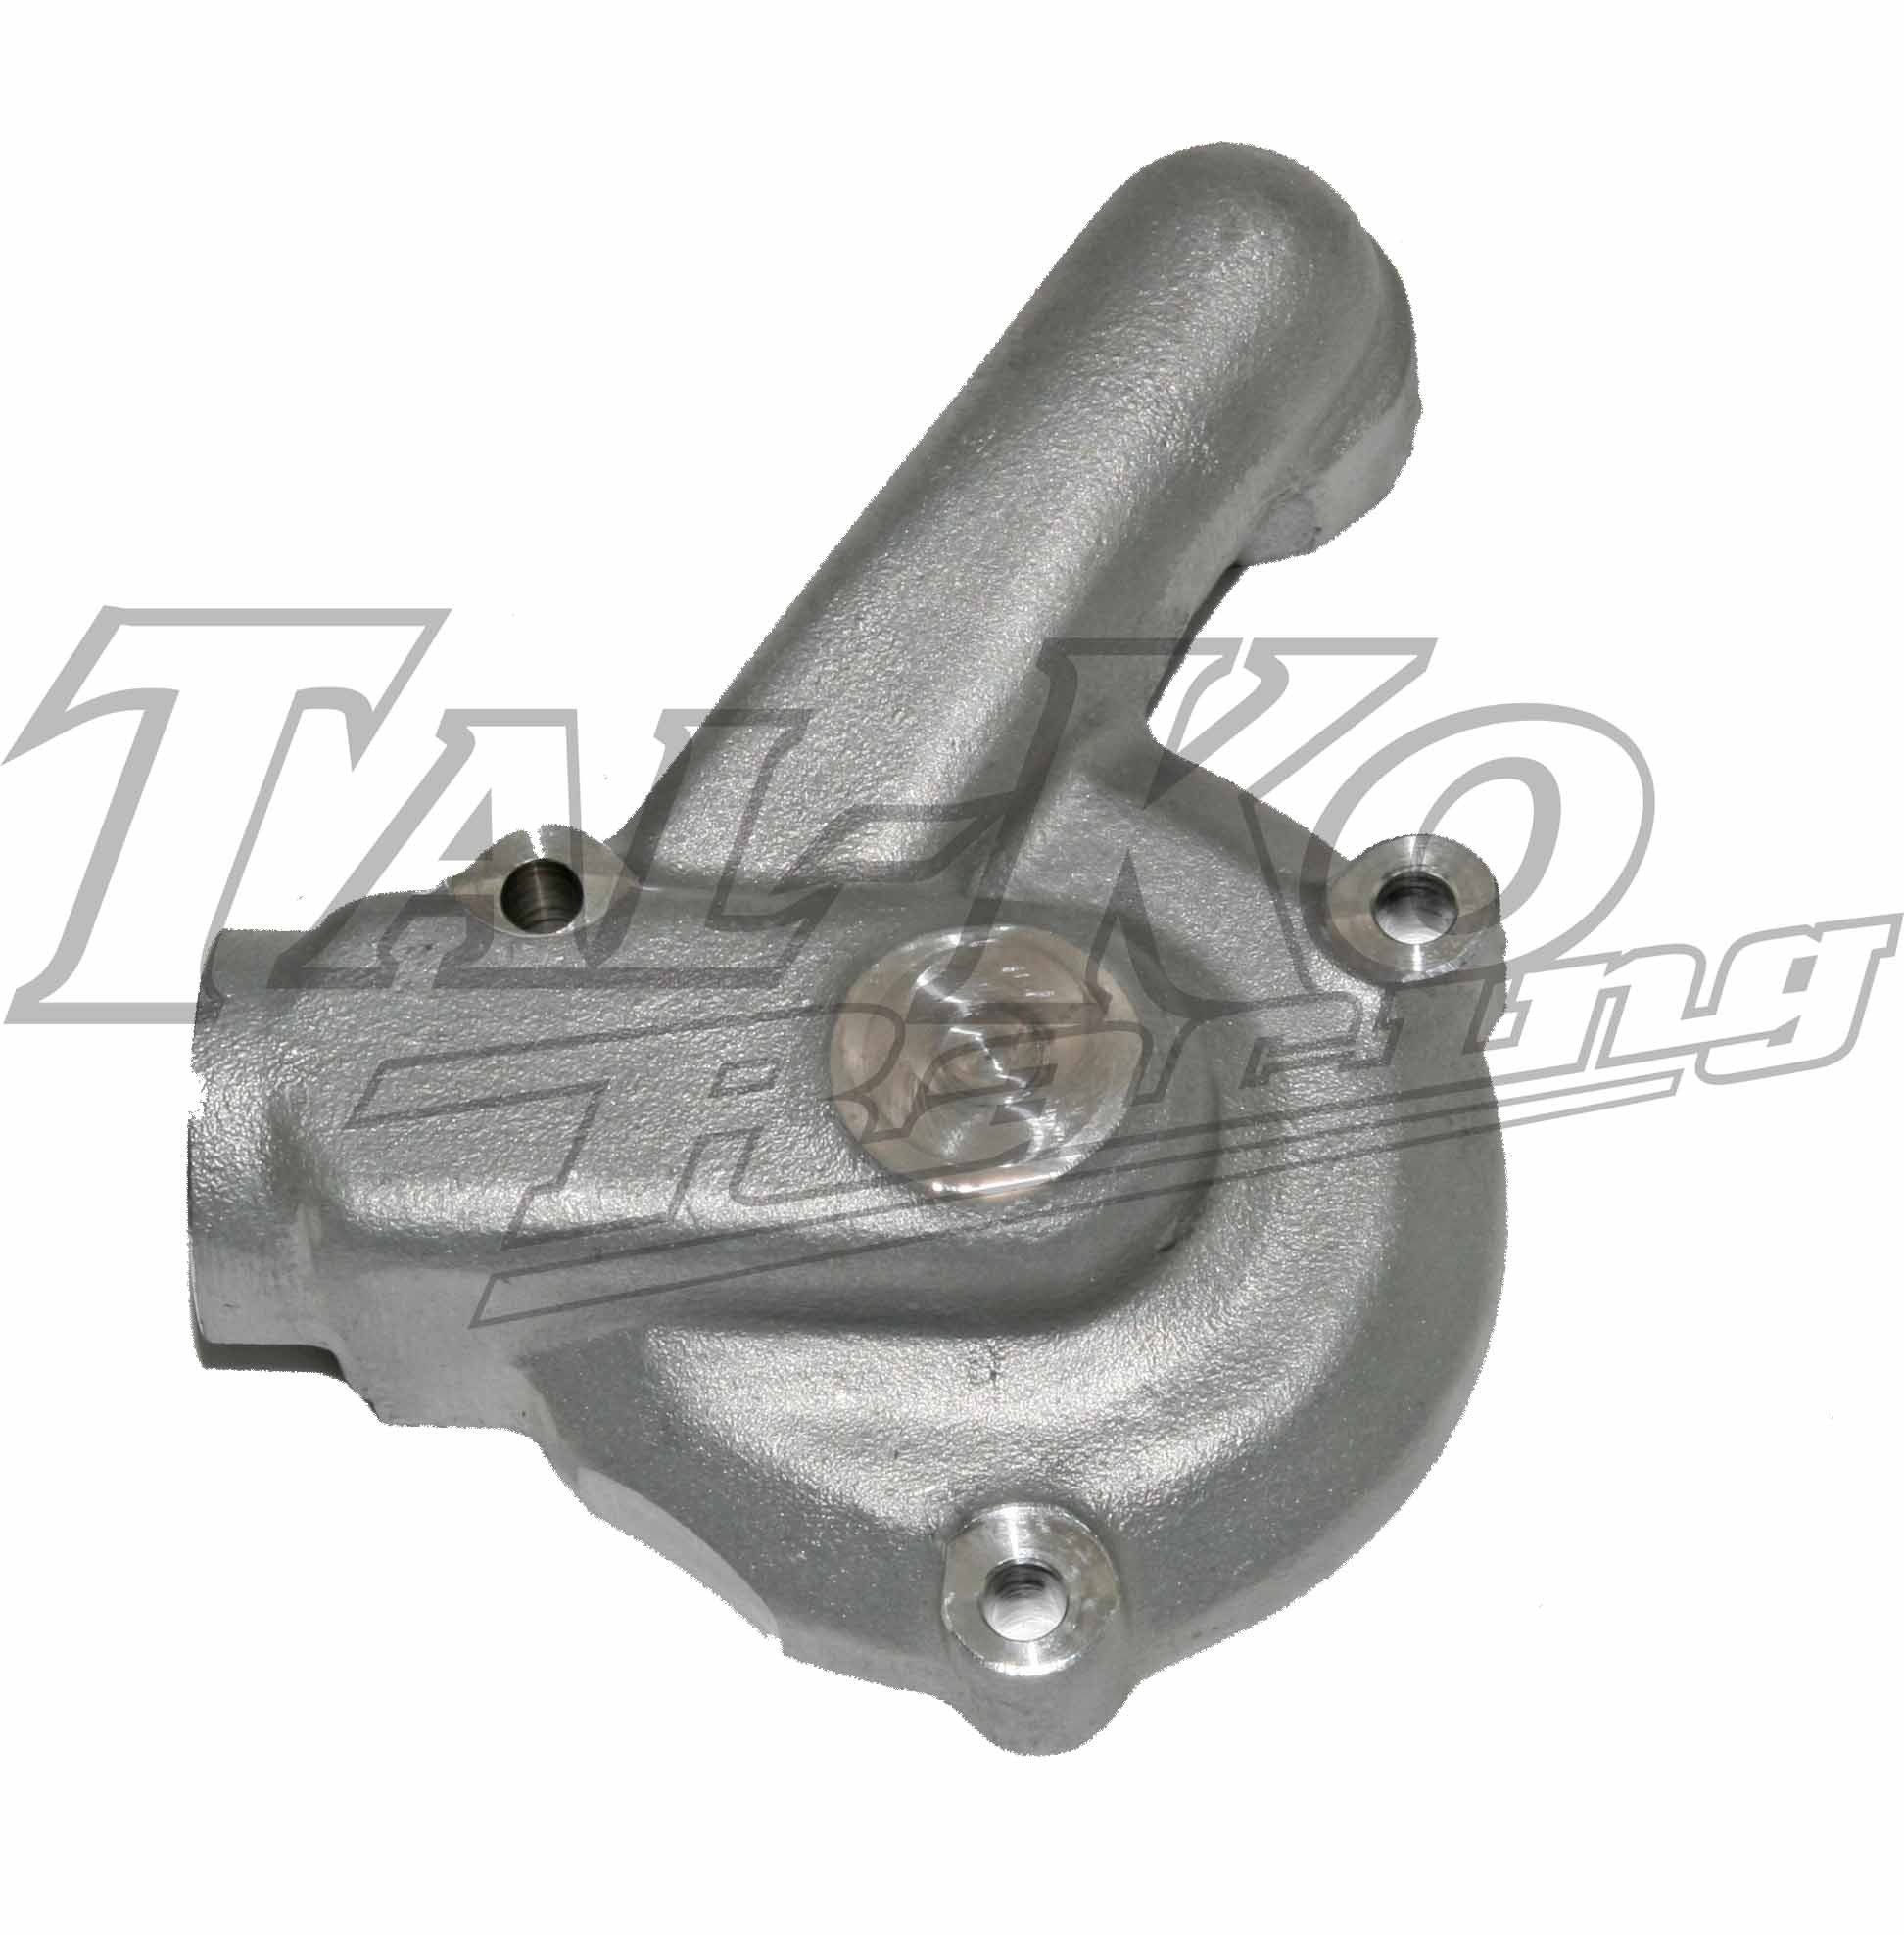 TKM K4S WATER PUMP COVER